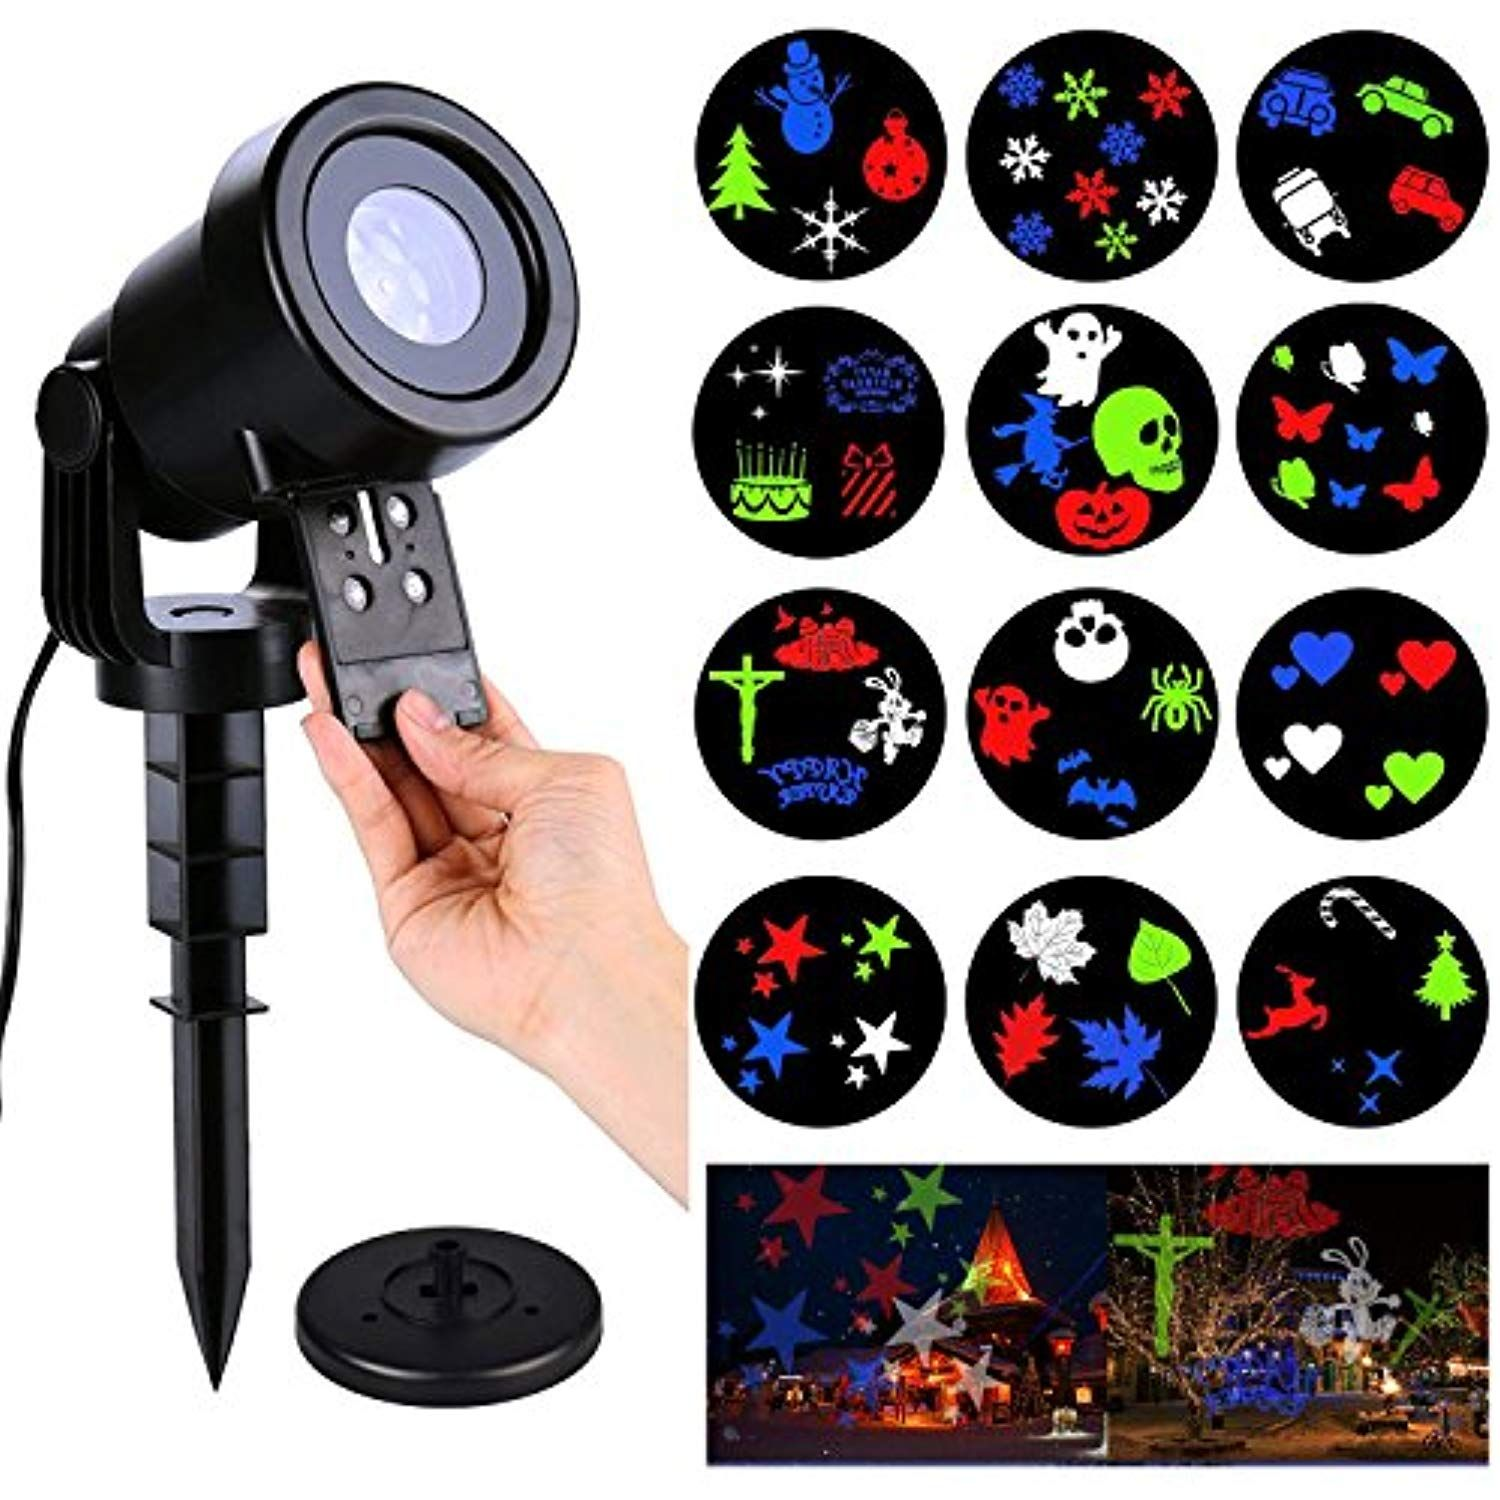 Christmas led projector lightsholiday light with 12